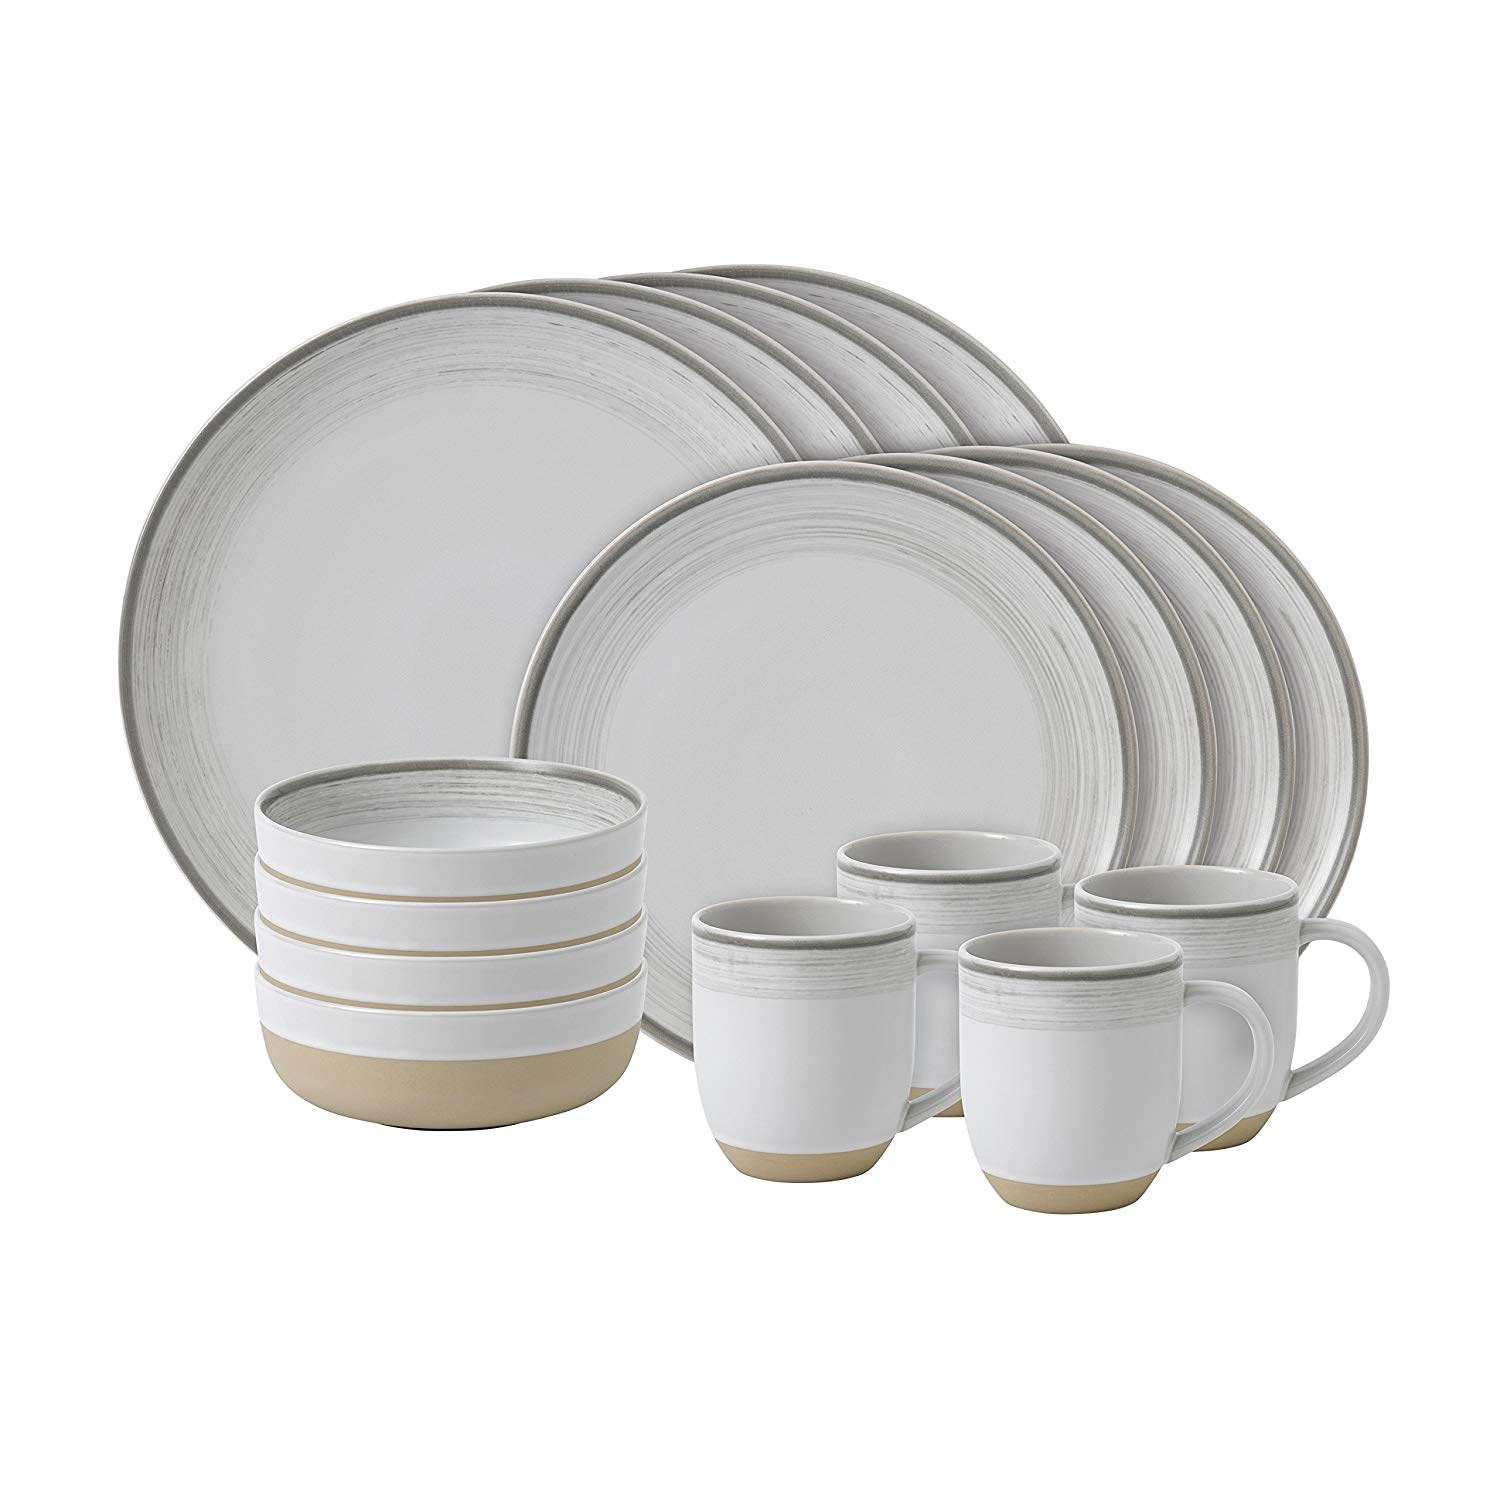 Онлайн каталог PROMENU: Набор посуды столовой Royal Doulton Brushed Glaze White, фарфор, белый, 16 предметов                                   40027653